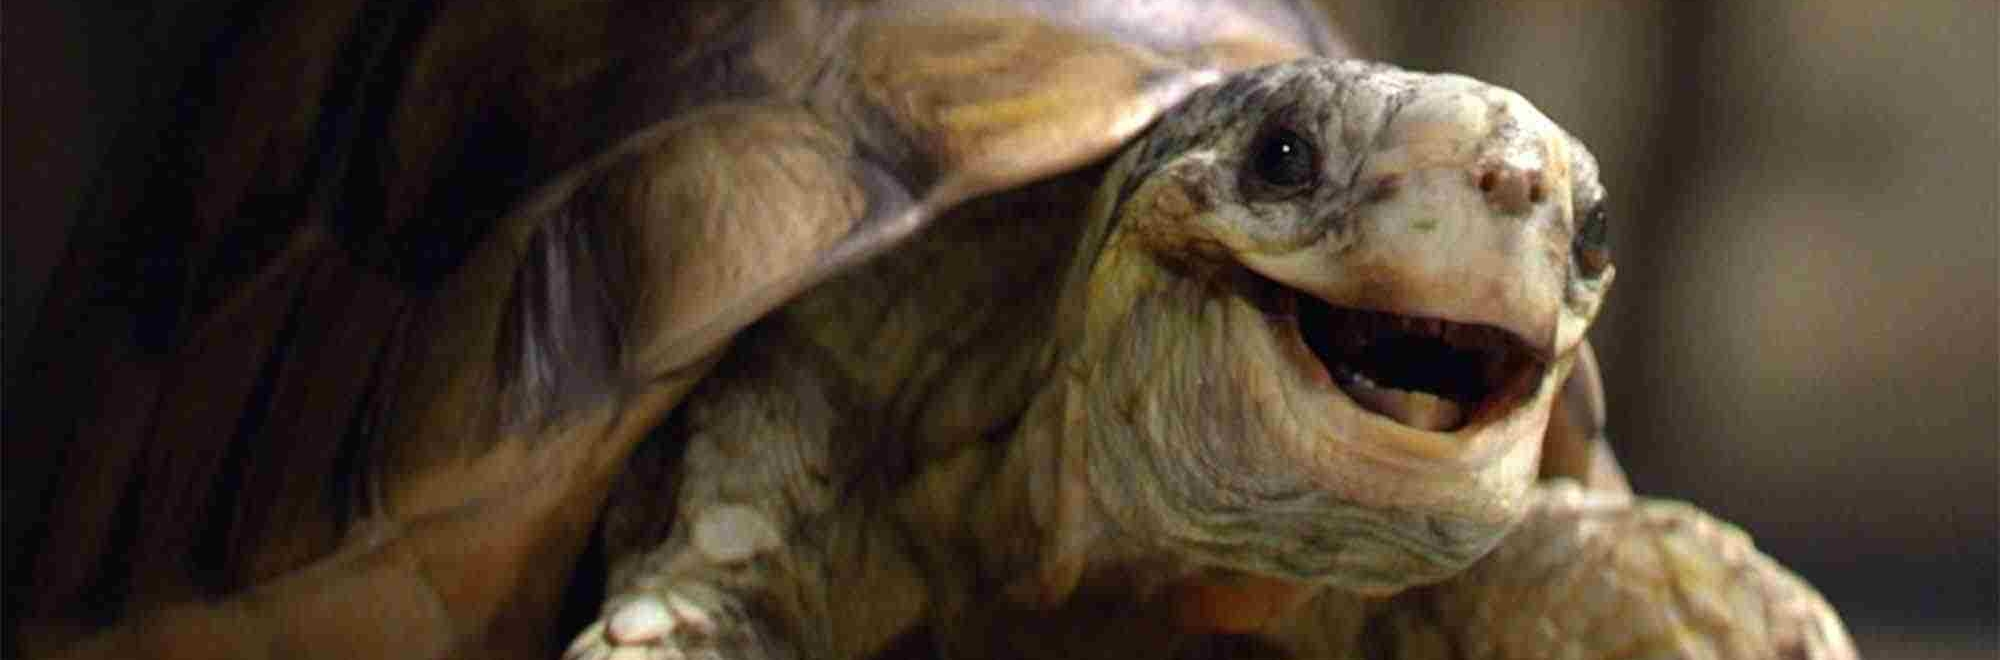 Atomic and Homebase launch new Easter campaign starring Gary the tortoise